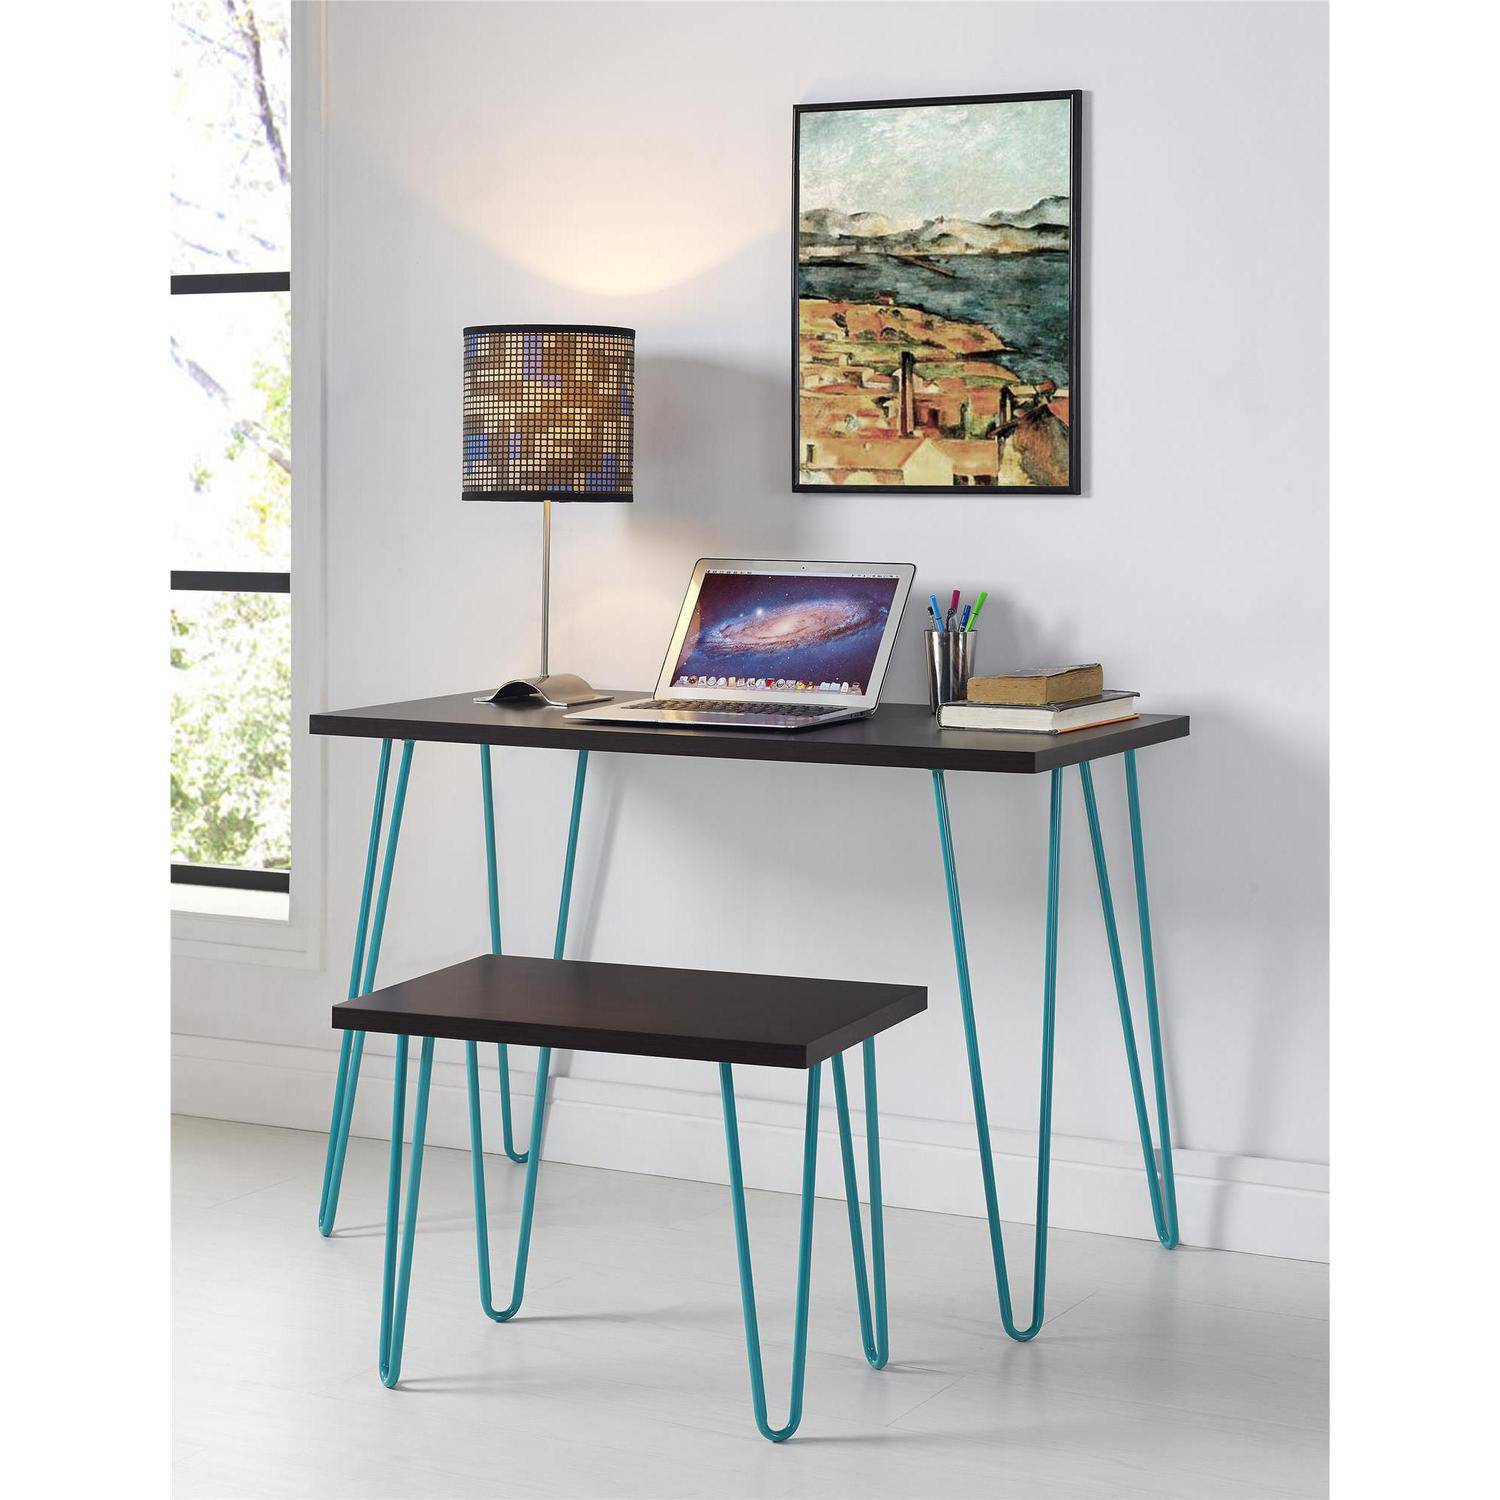 tr get with faster belair o desk next atwork previous metal desks it lite bel office legs shop